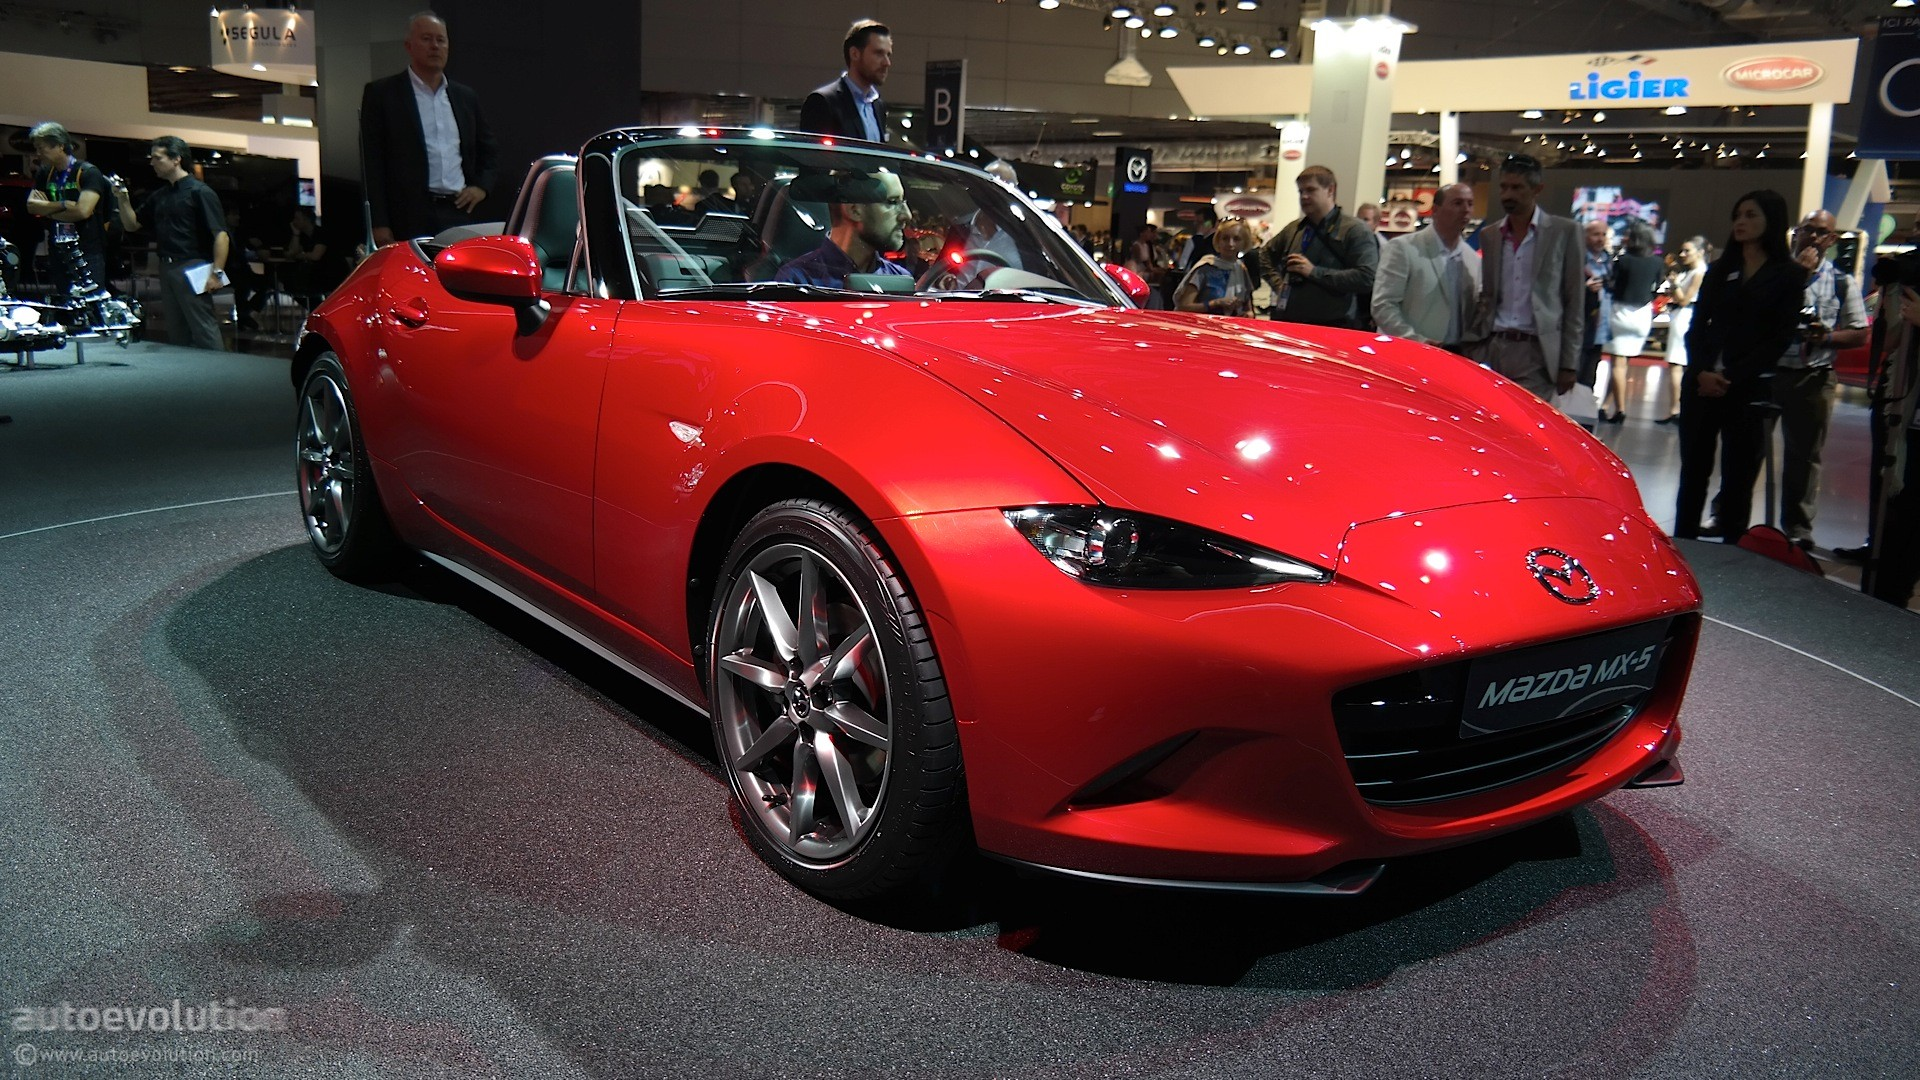 2016 mazda mx 5 miata us base pricing set at 24 915 autoevolution. Black Bedroom Furniture Sets. Home Design Ideas